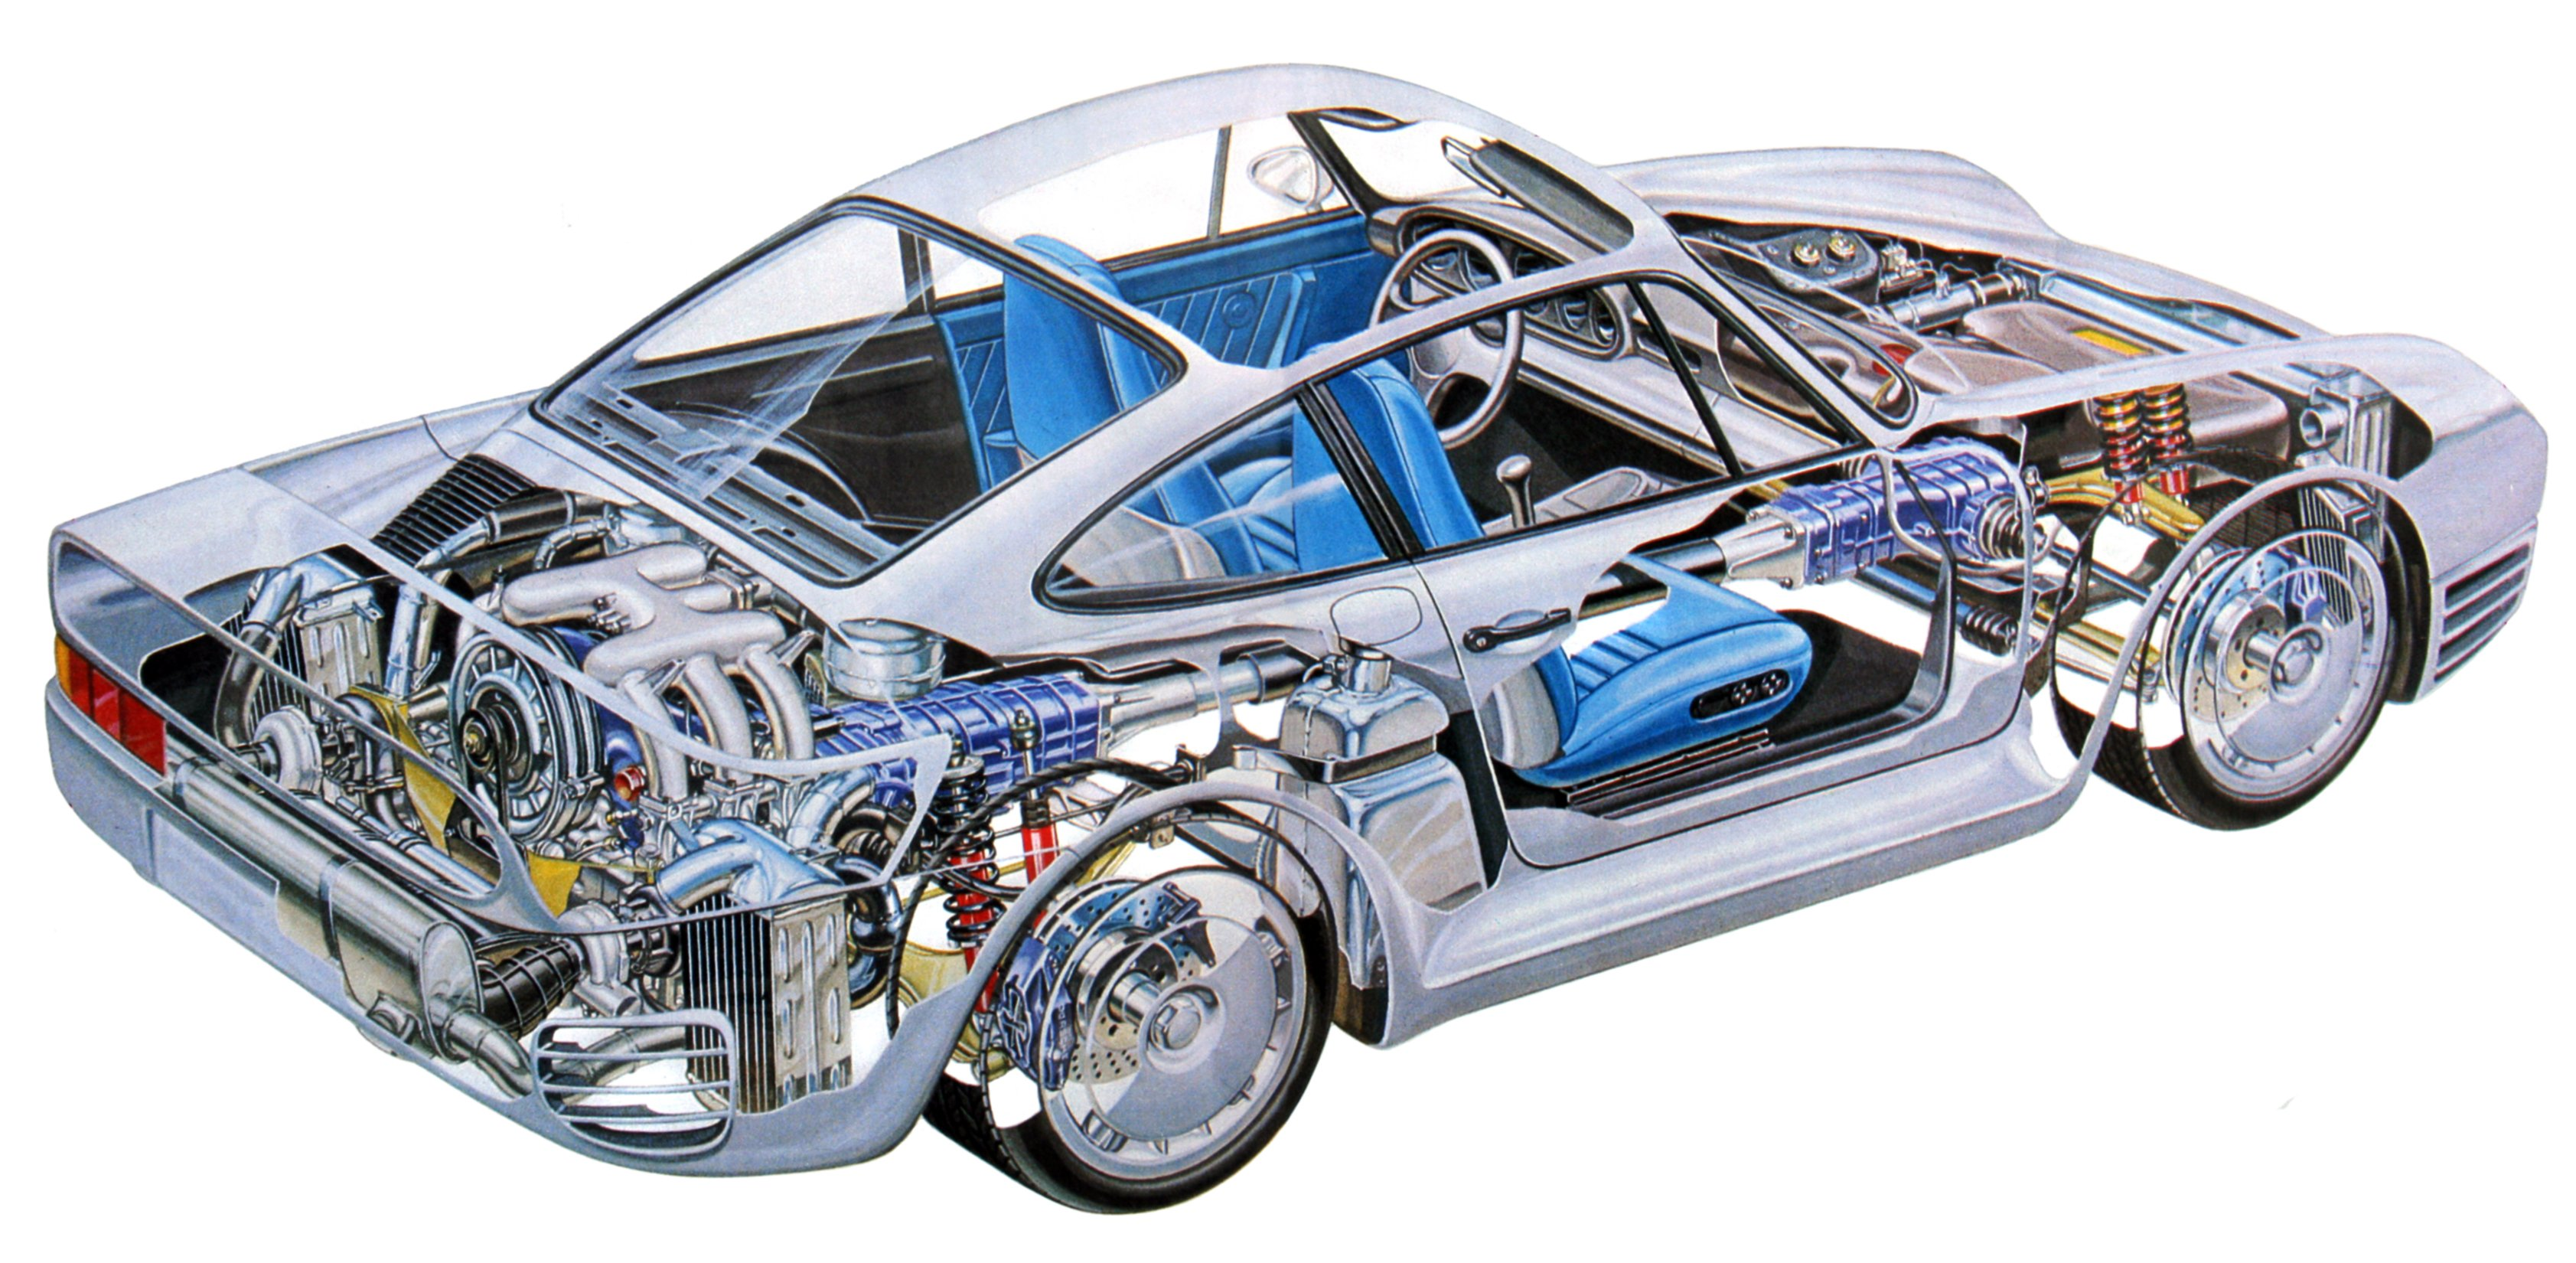 Porsche 959 Technical Cars Cutaway Wallpaper 3366x1650